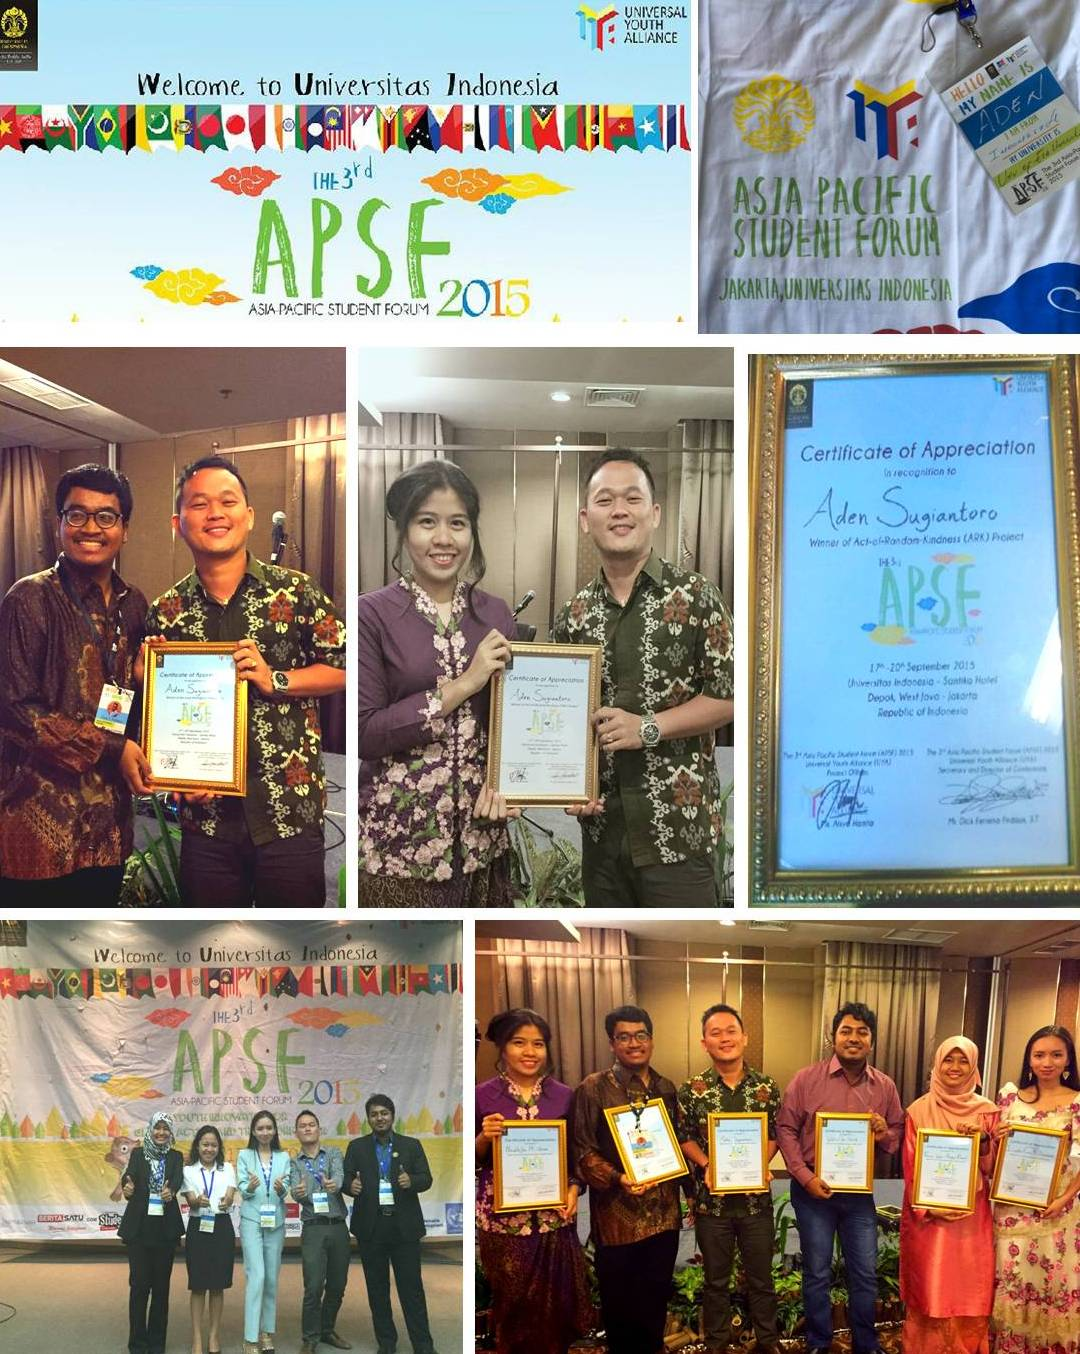 Mahasiswa Fakultas Hukum, Aden Sugiantoro – The Winner of Act-of-Random-Kindness (ARK) Project and The Winner of The Most Photogenic Delegate at The Third Asia Pacific Student Forum 2015